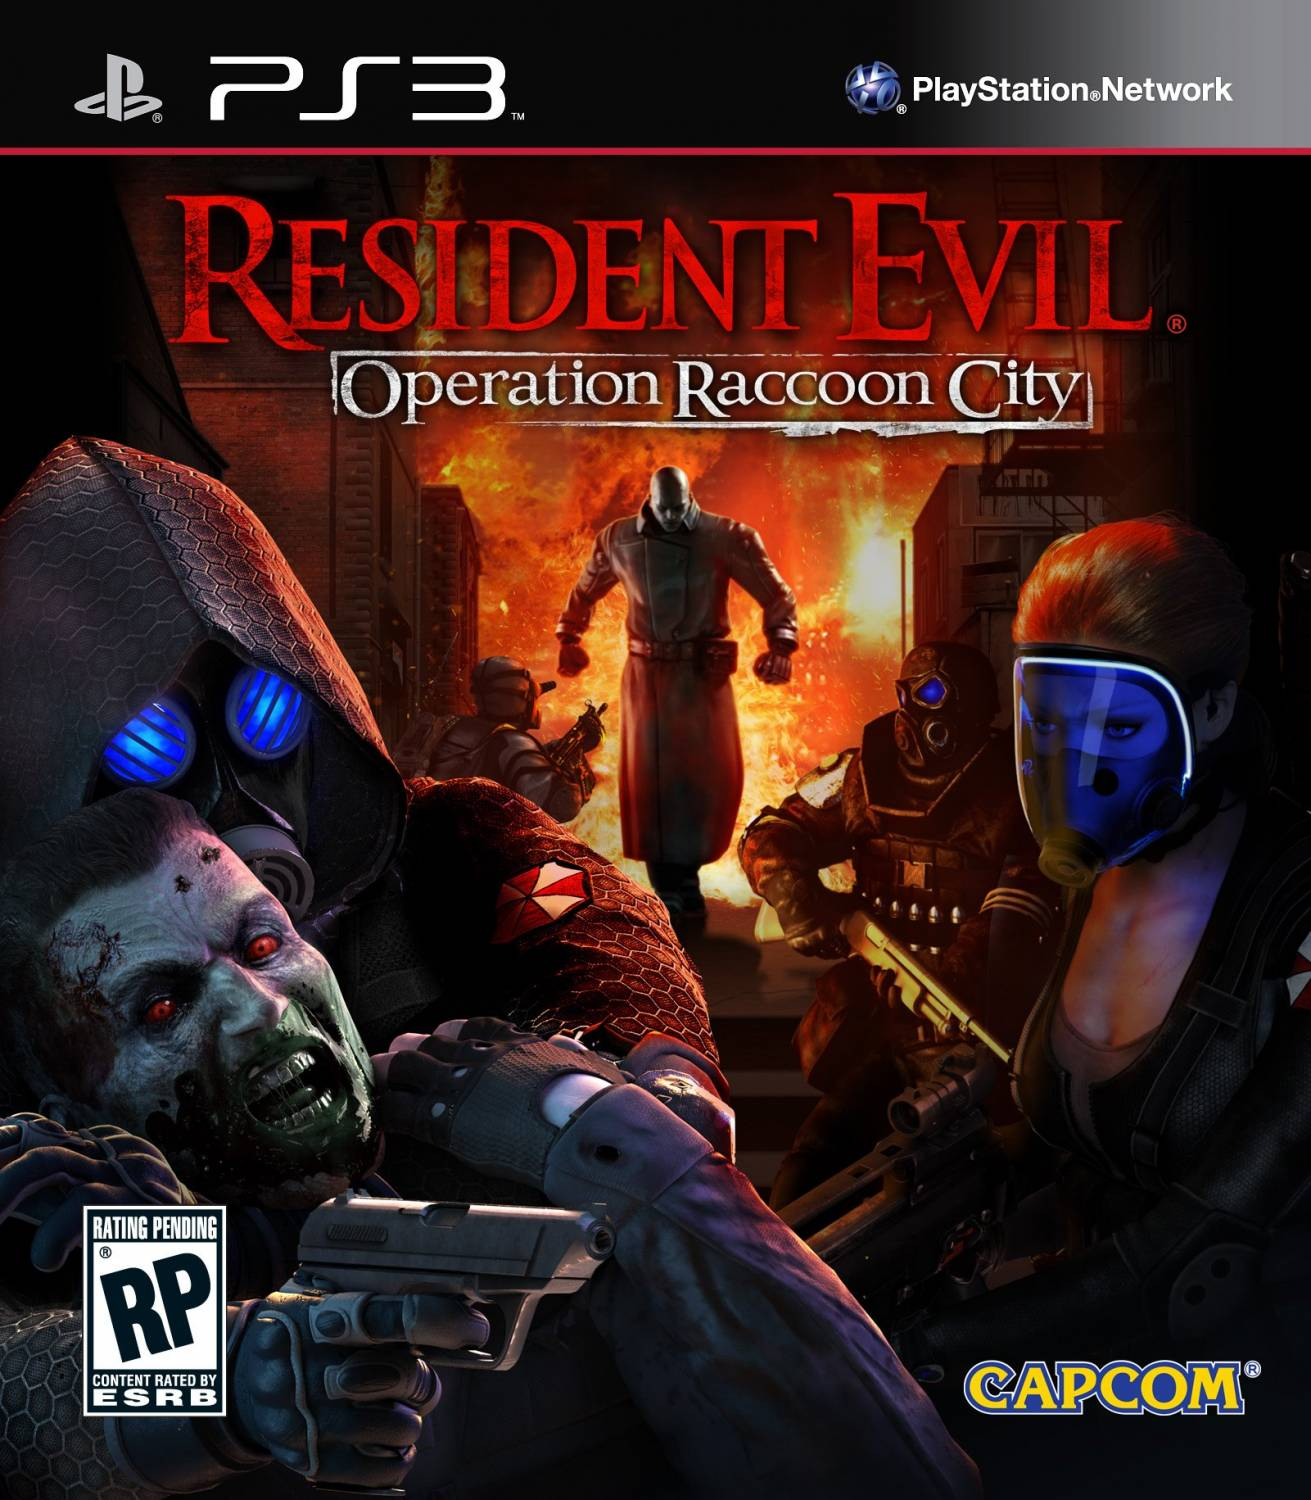 Resident Evil - Operation Raccoon City (RUS) [PS3]